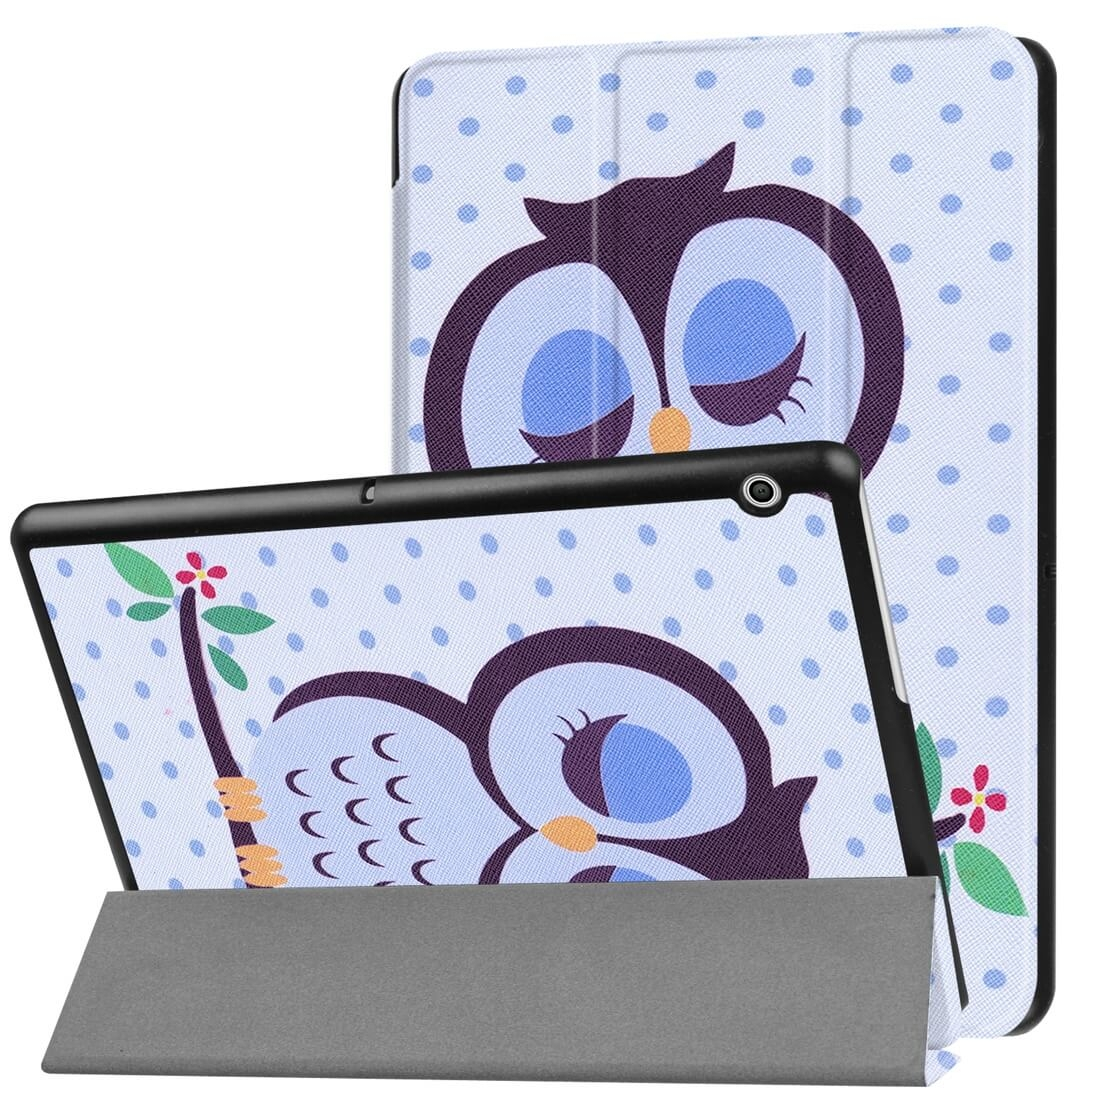 "FORCELL ART zaklapovací obal Huawei MediaPad T3 10 ""OWL"